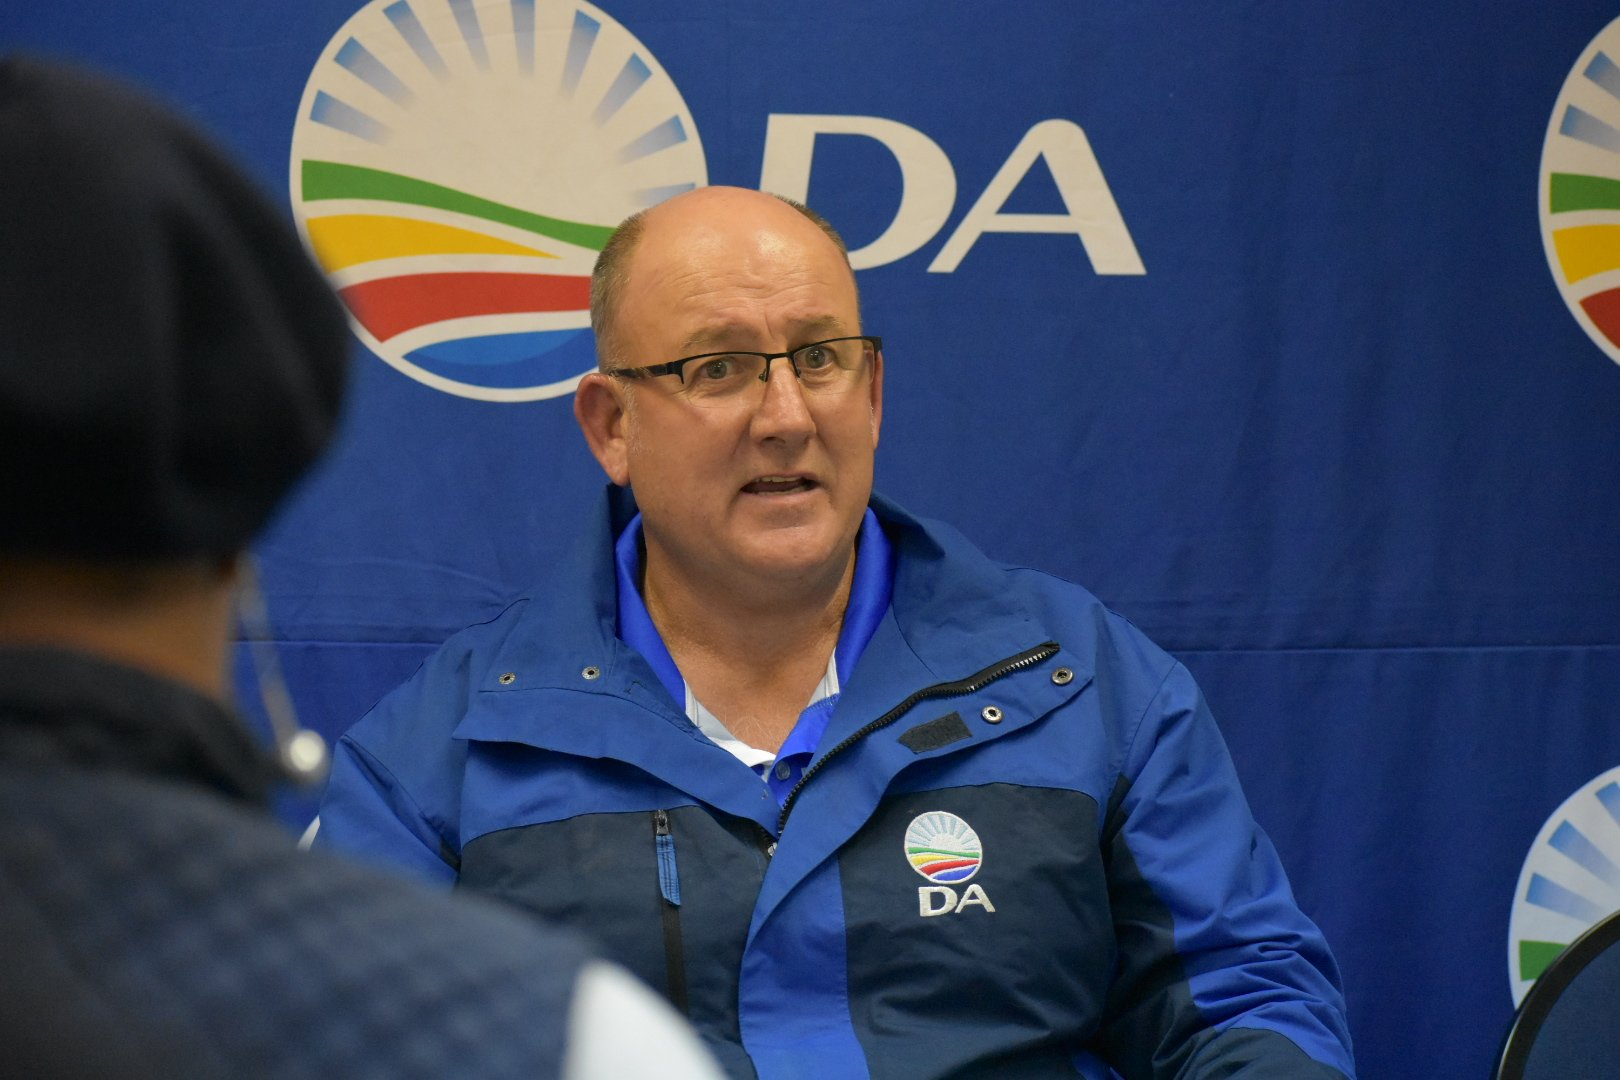 DA calls for the Minister of COGTA to urgently intervene in Nelson Mandela Bay